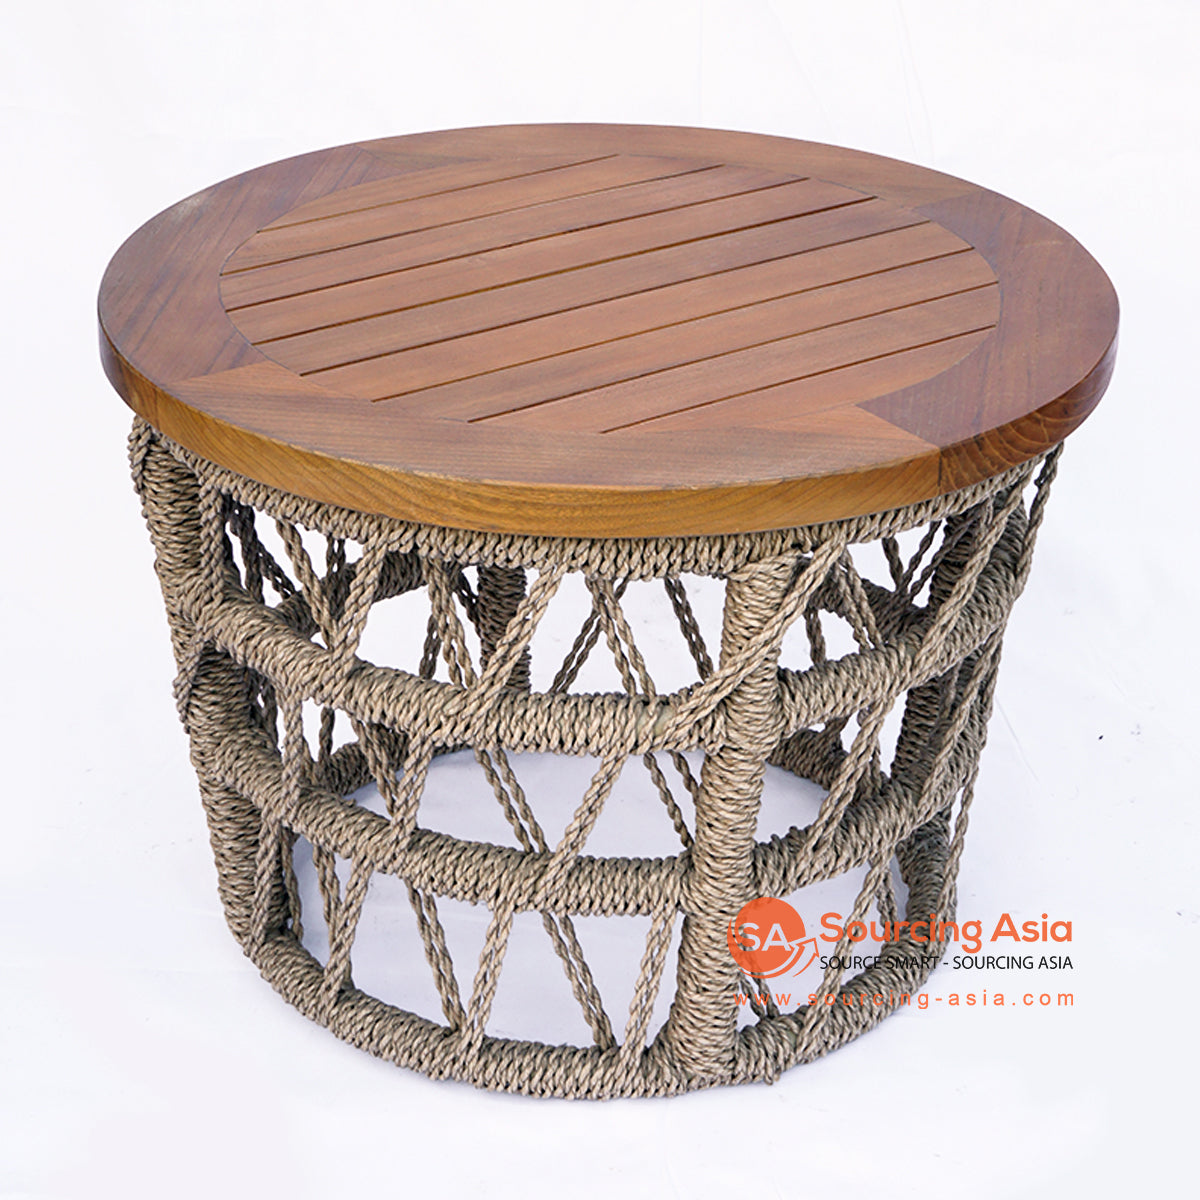 BNTC005-2 ROUND WOODEN TOP AND SYNTHETIC RATTAN TRAY TABLE